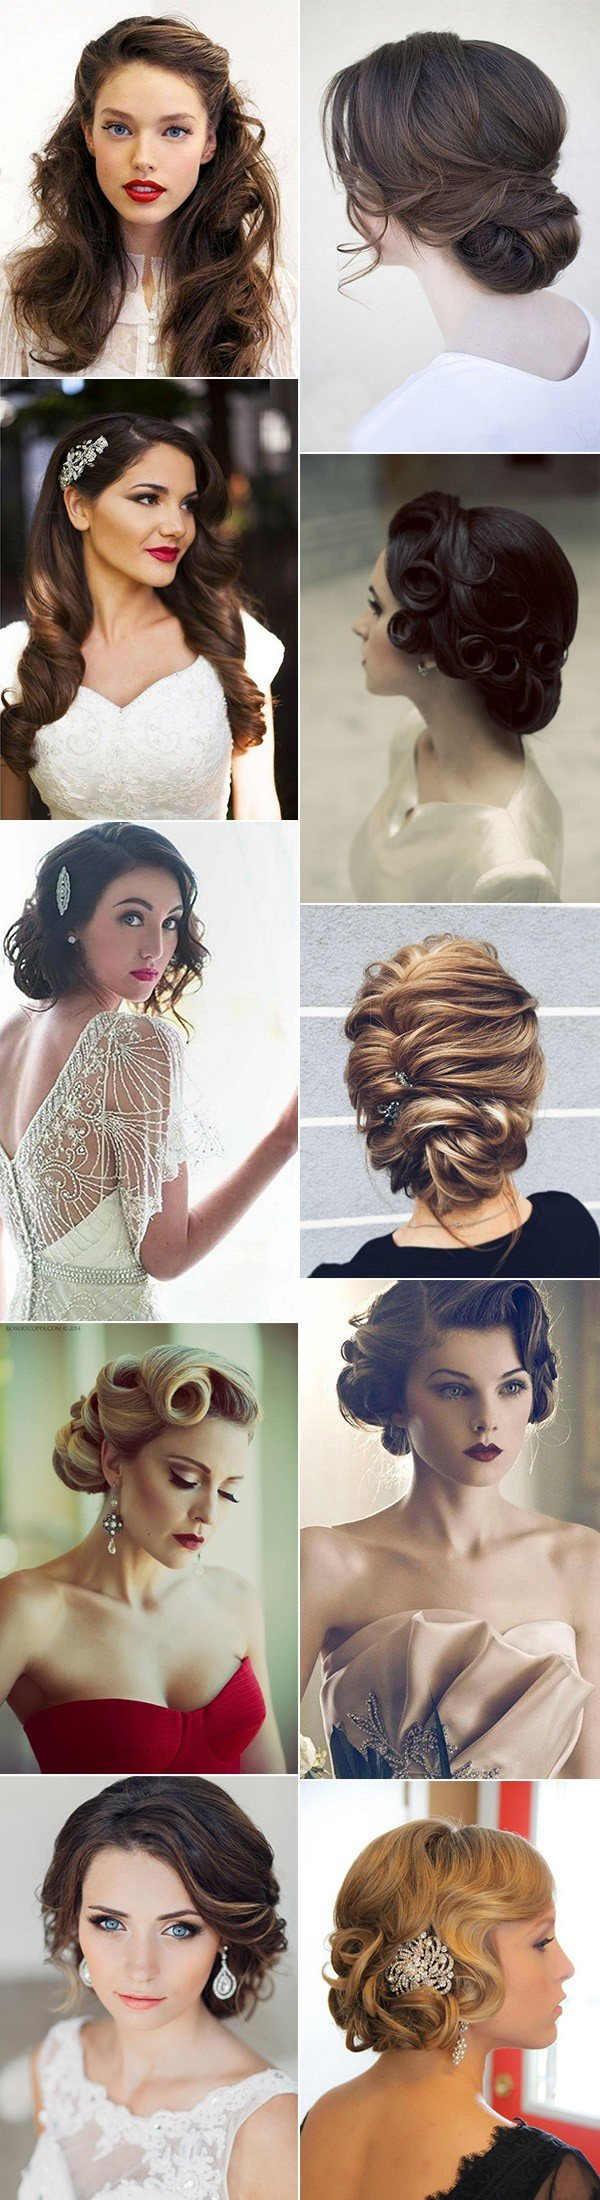 trending chic vintage wedding hairstyles